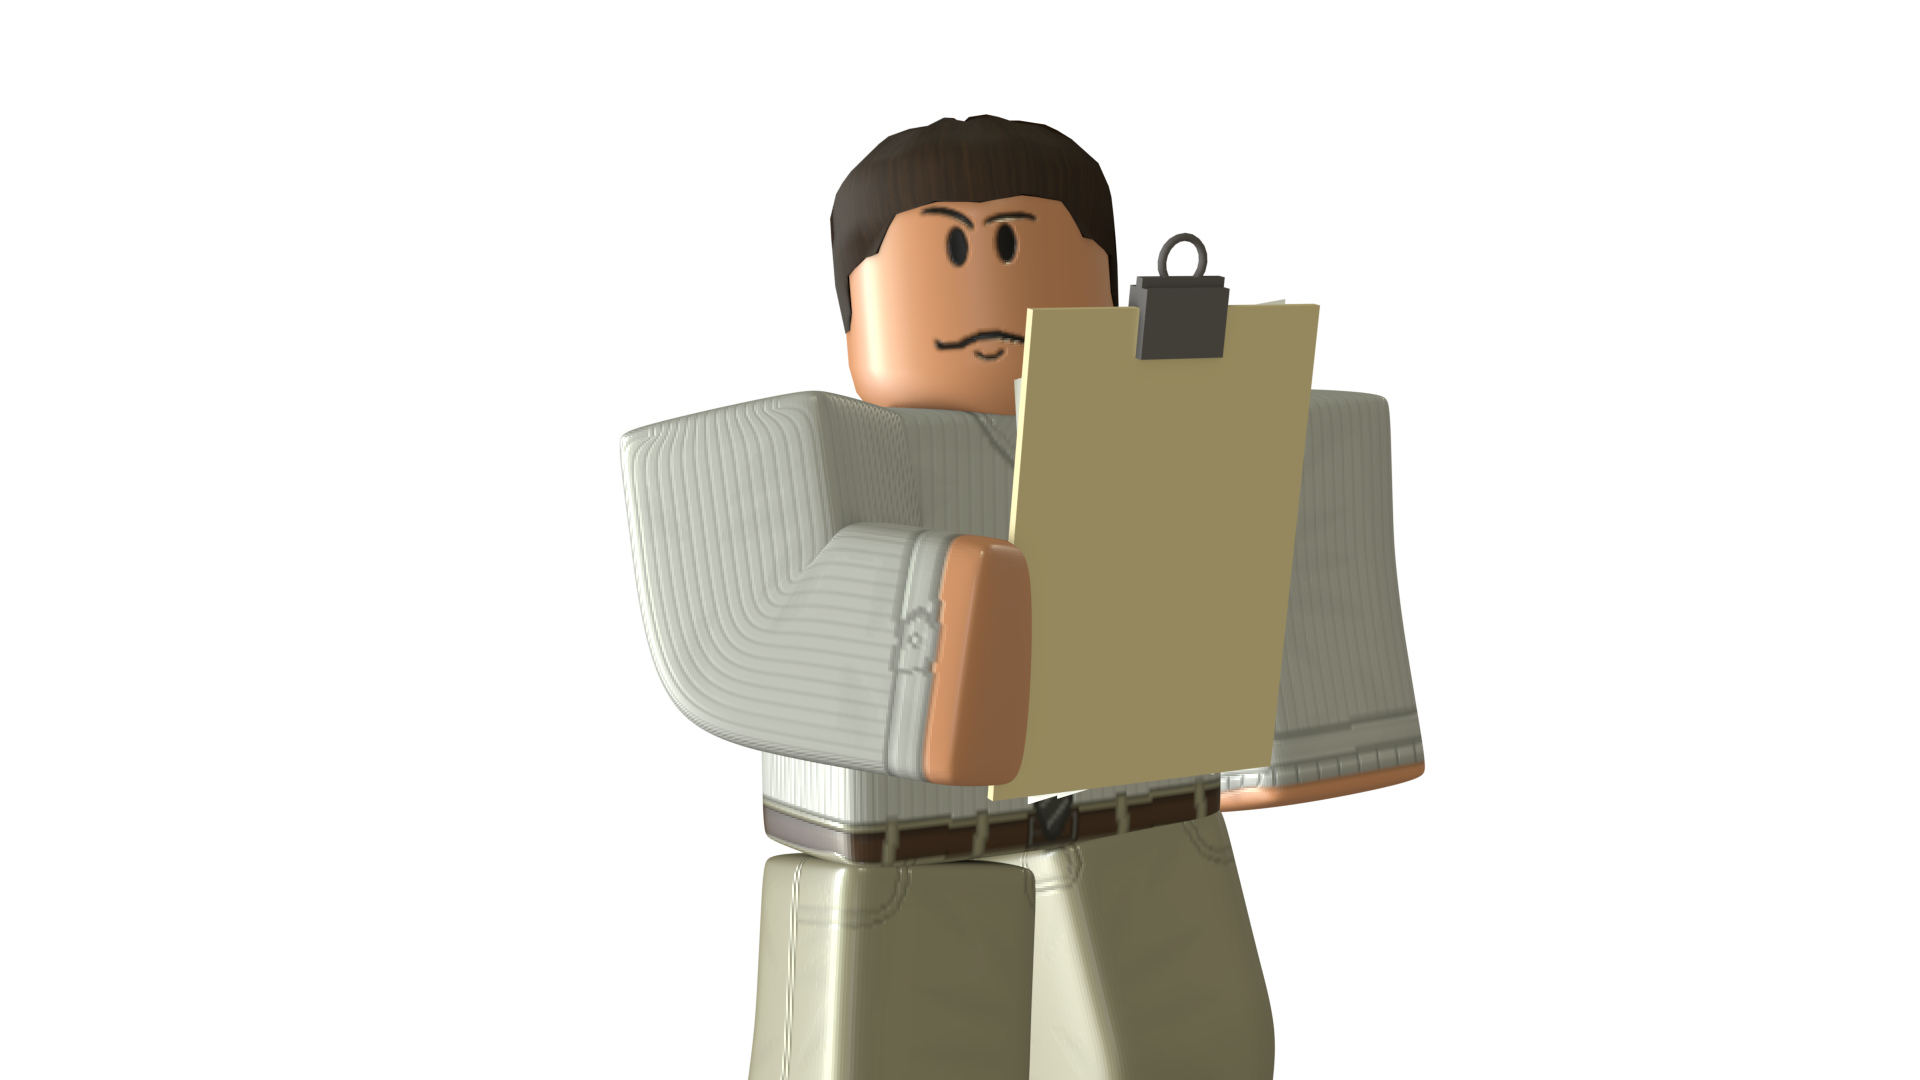 Free Pictures Of Roblox Roblox Renders Free To Use Community Resources Roblox Developer Forum